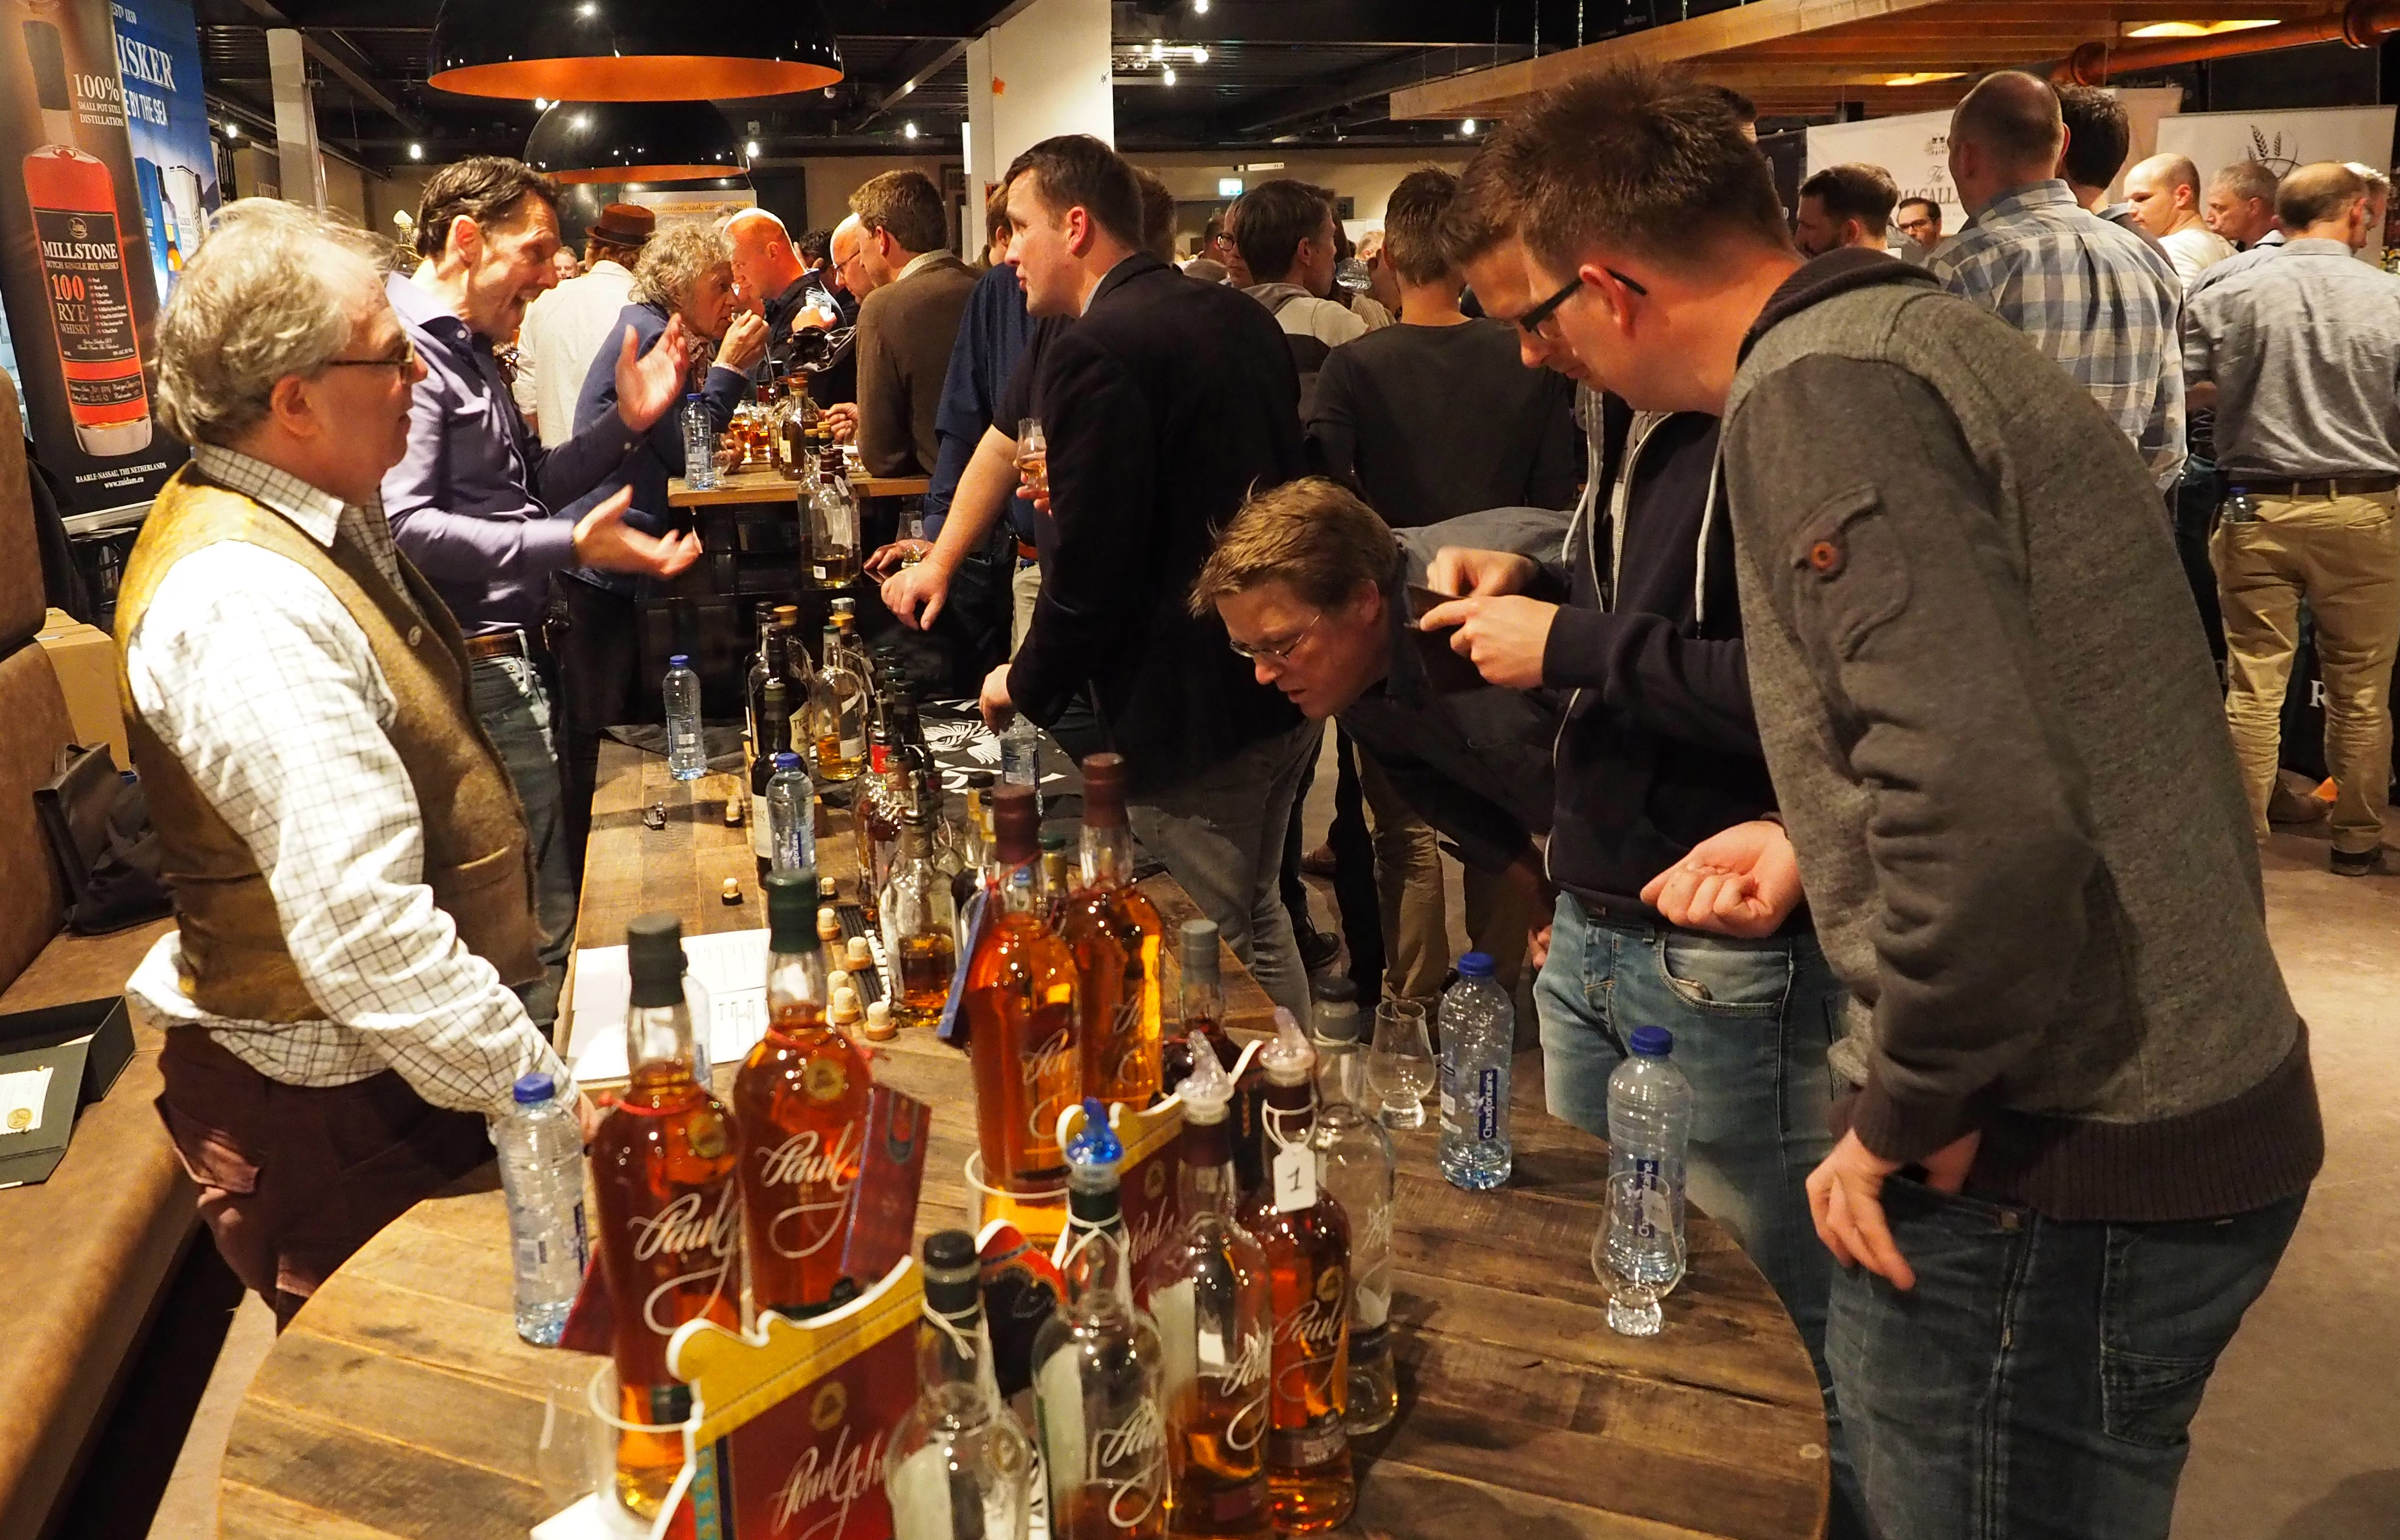 henri goossen whiskyproeverij whiskytasting whisky weekend twente